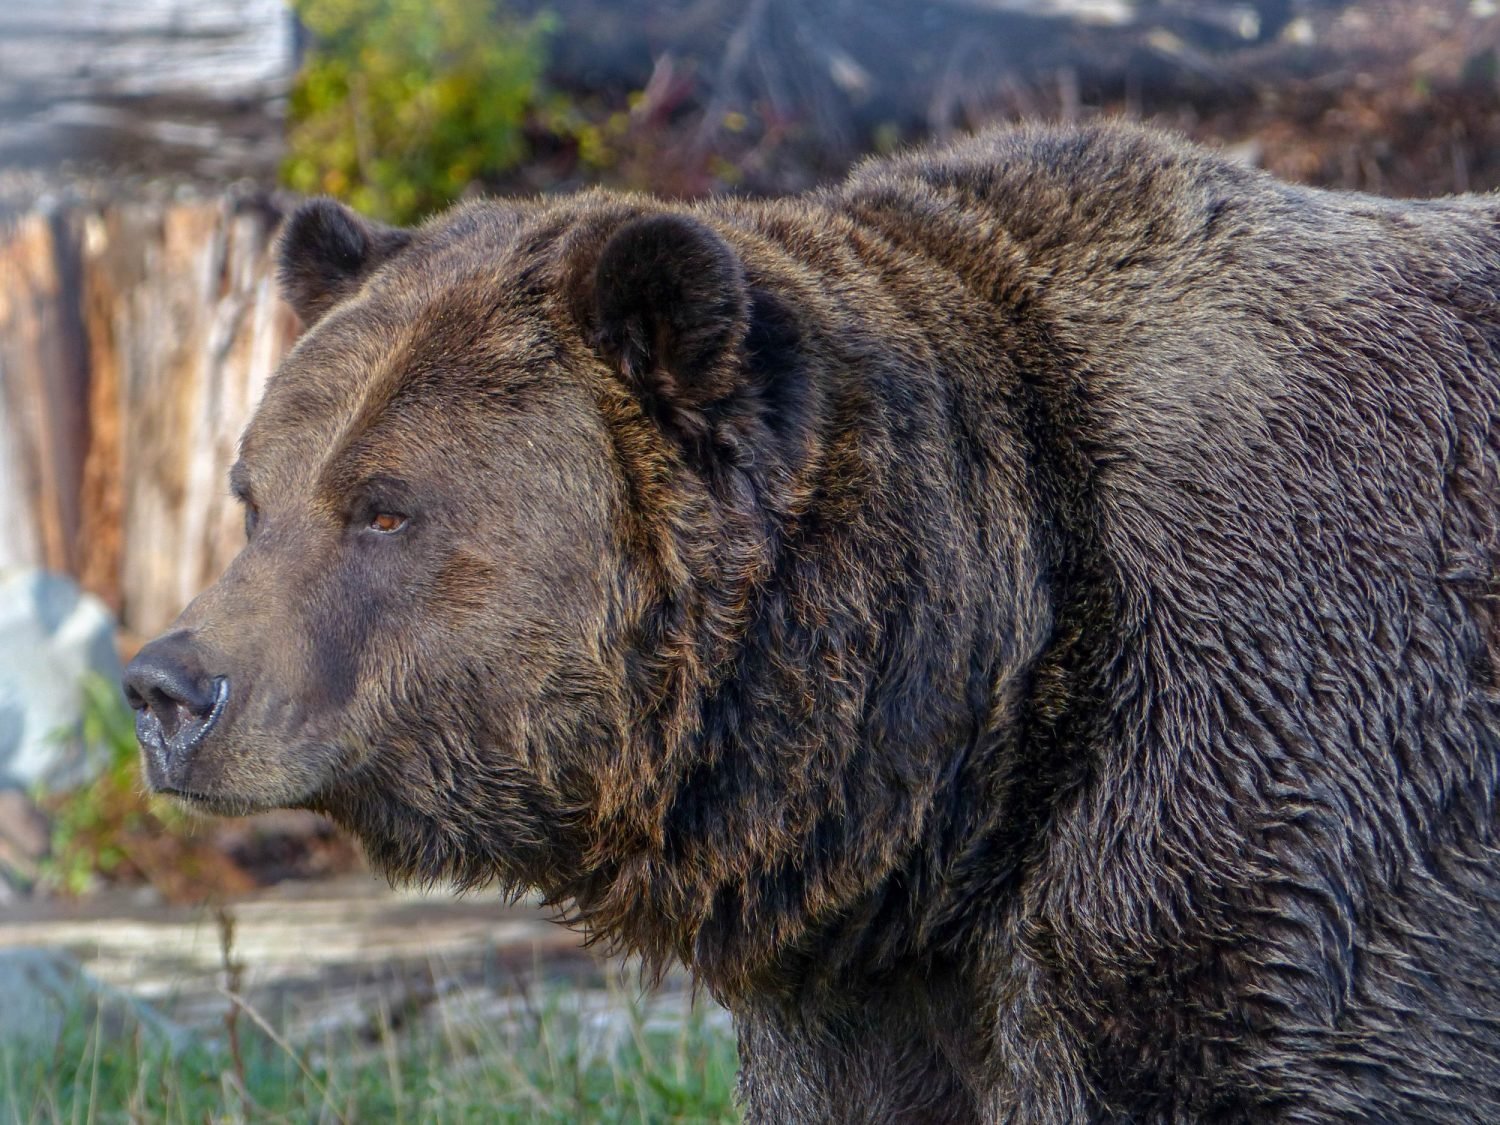 Grouse Mountain grizzly bear - Vancouver un autumn